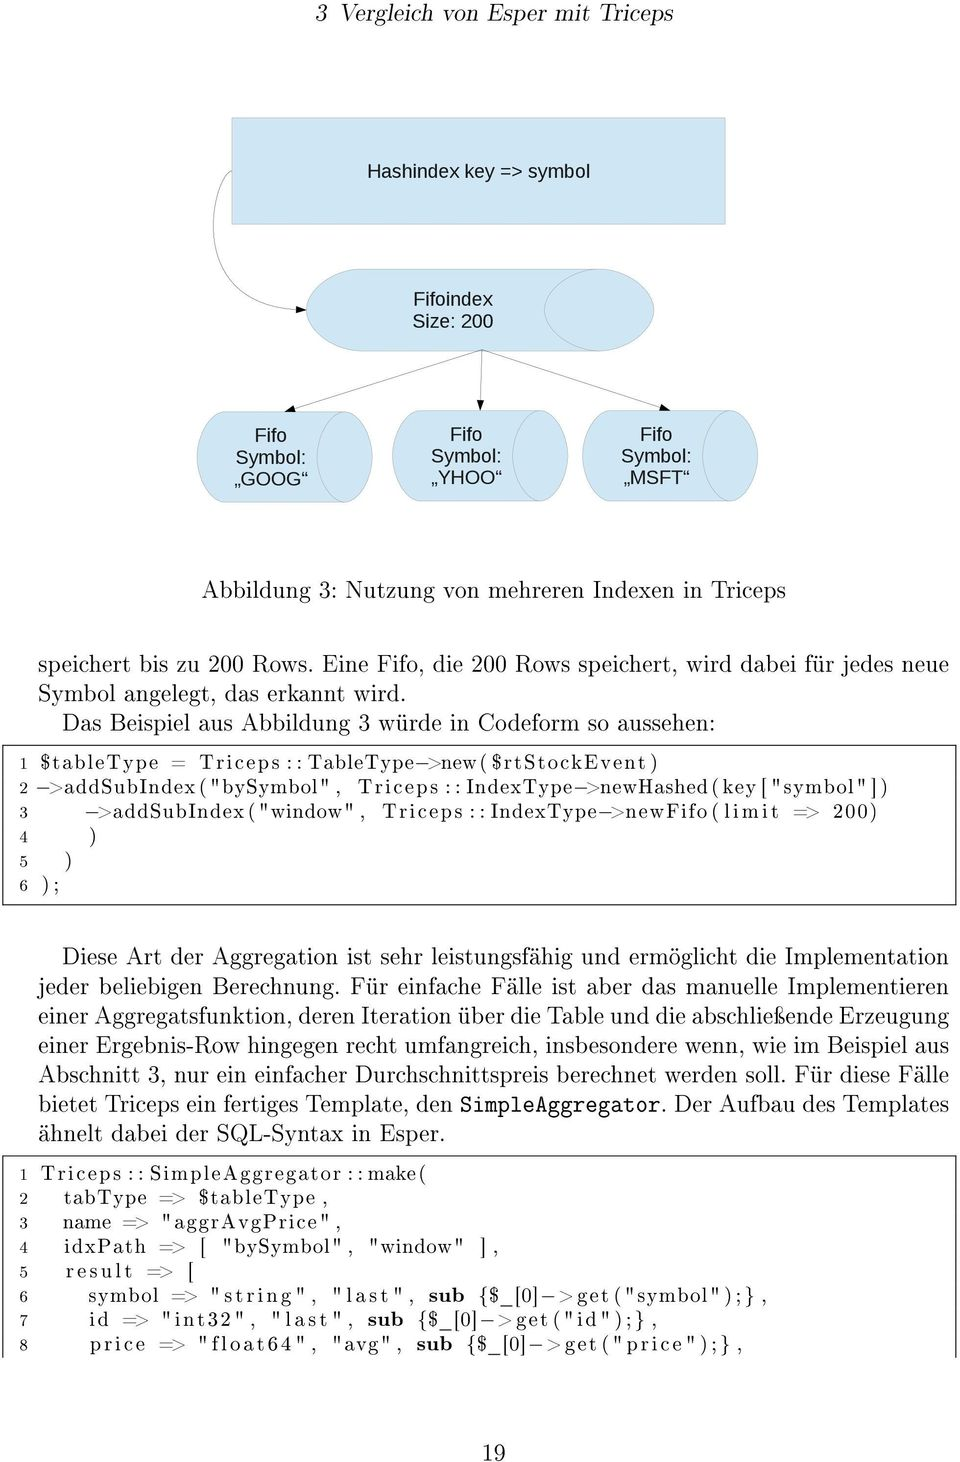 "Das Beispiel aus Abbildung 3 würde in Codeform so aussehen: 1 $tabletype = Triceps : : TableType >new ( $rtstockevent ) 2 >addsubindex ( ""bysymbol"", Triceps : : IndexType >newhashed ( key [ ""symbol"""